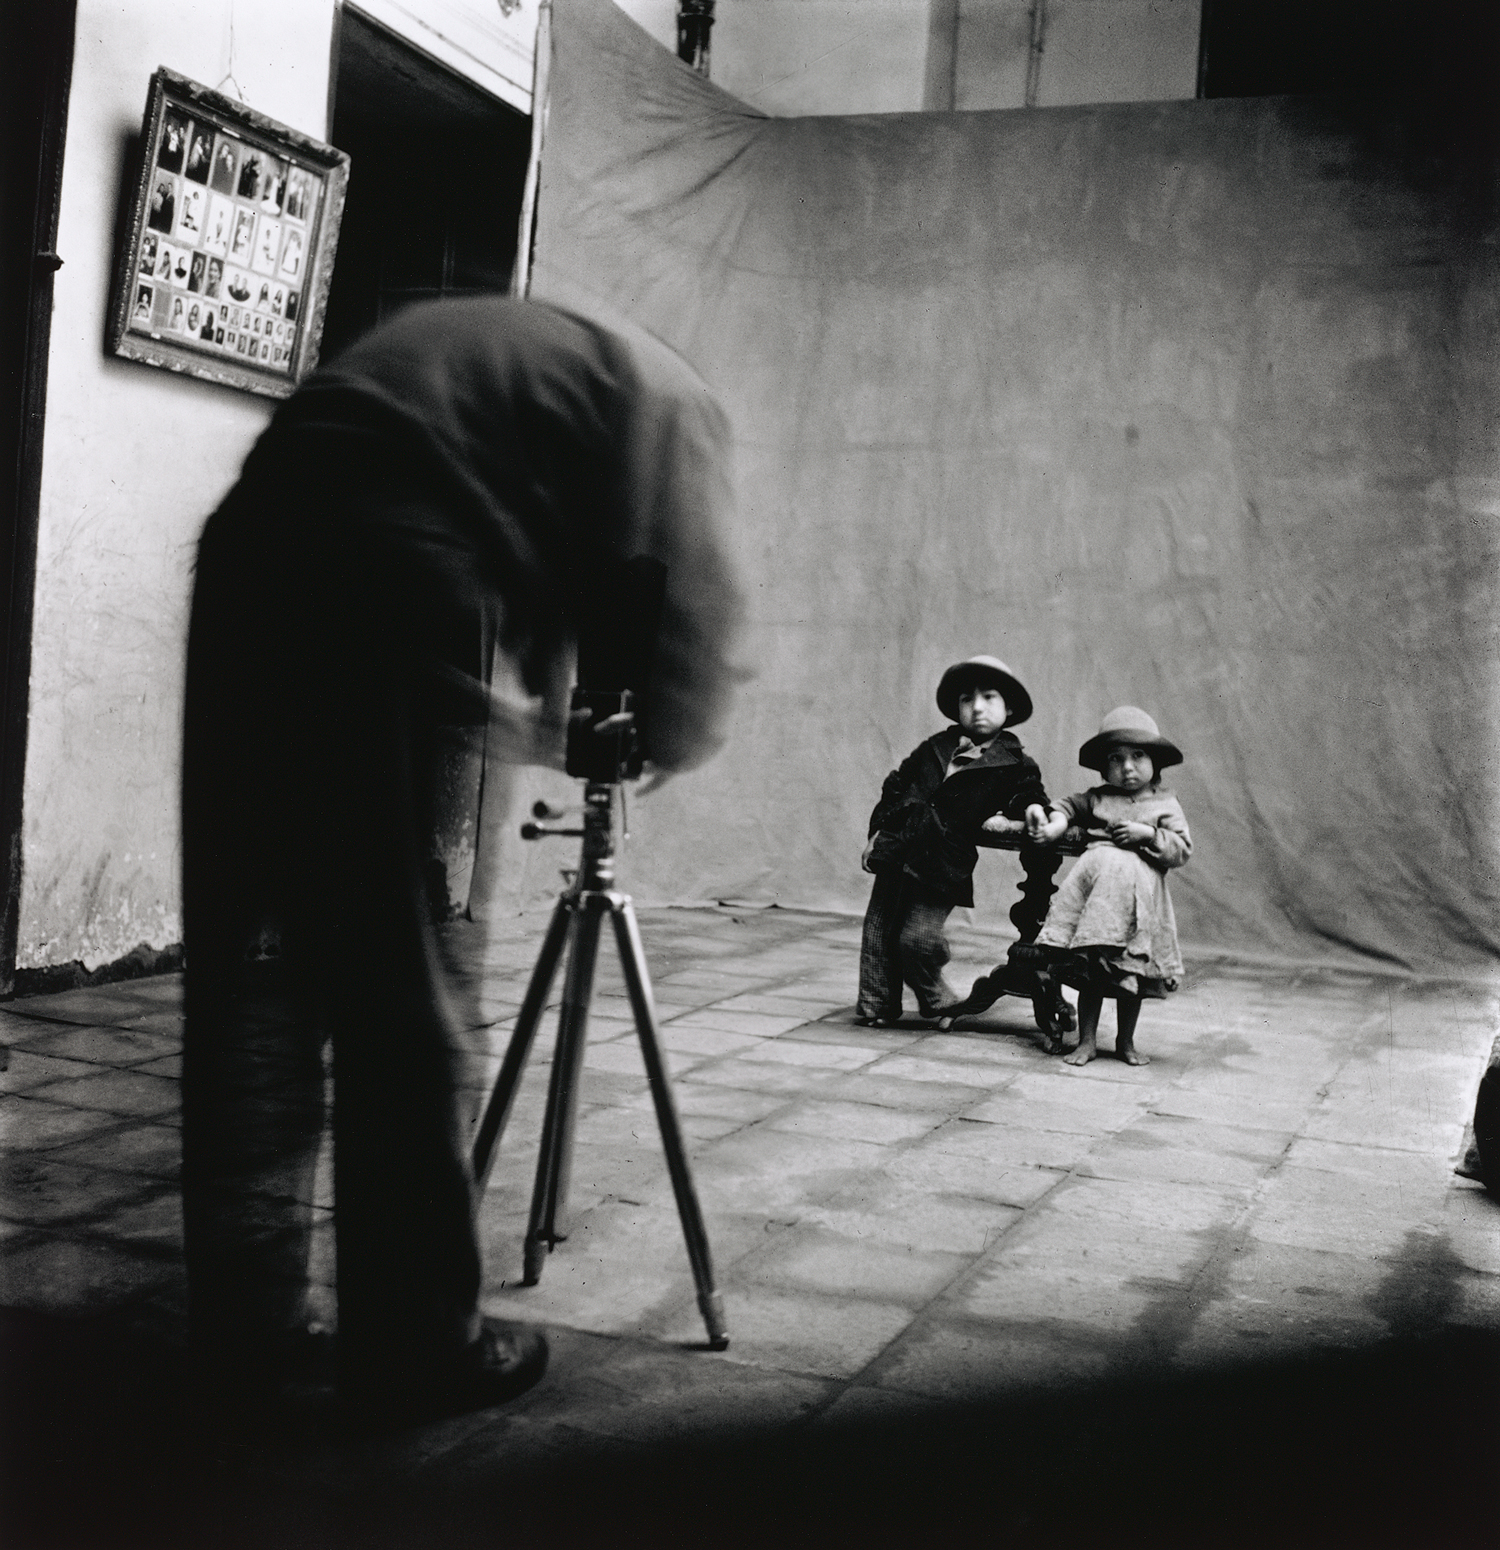 Fotographer Unknown, Circa 1948 Cuzco, Peru (c) The Irving Penn Foundation